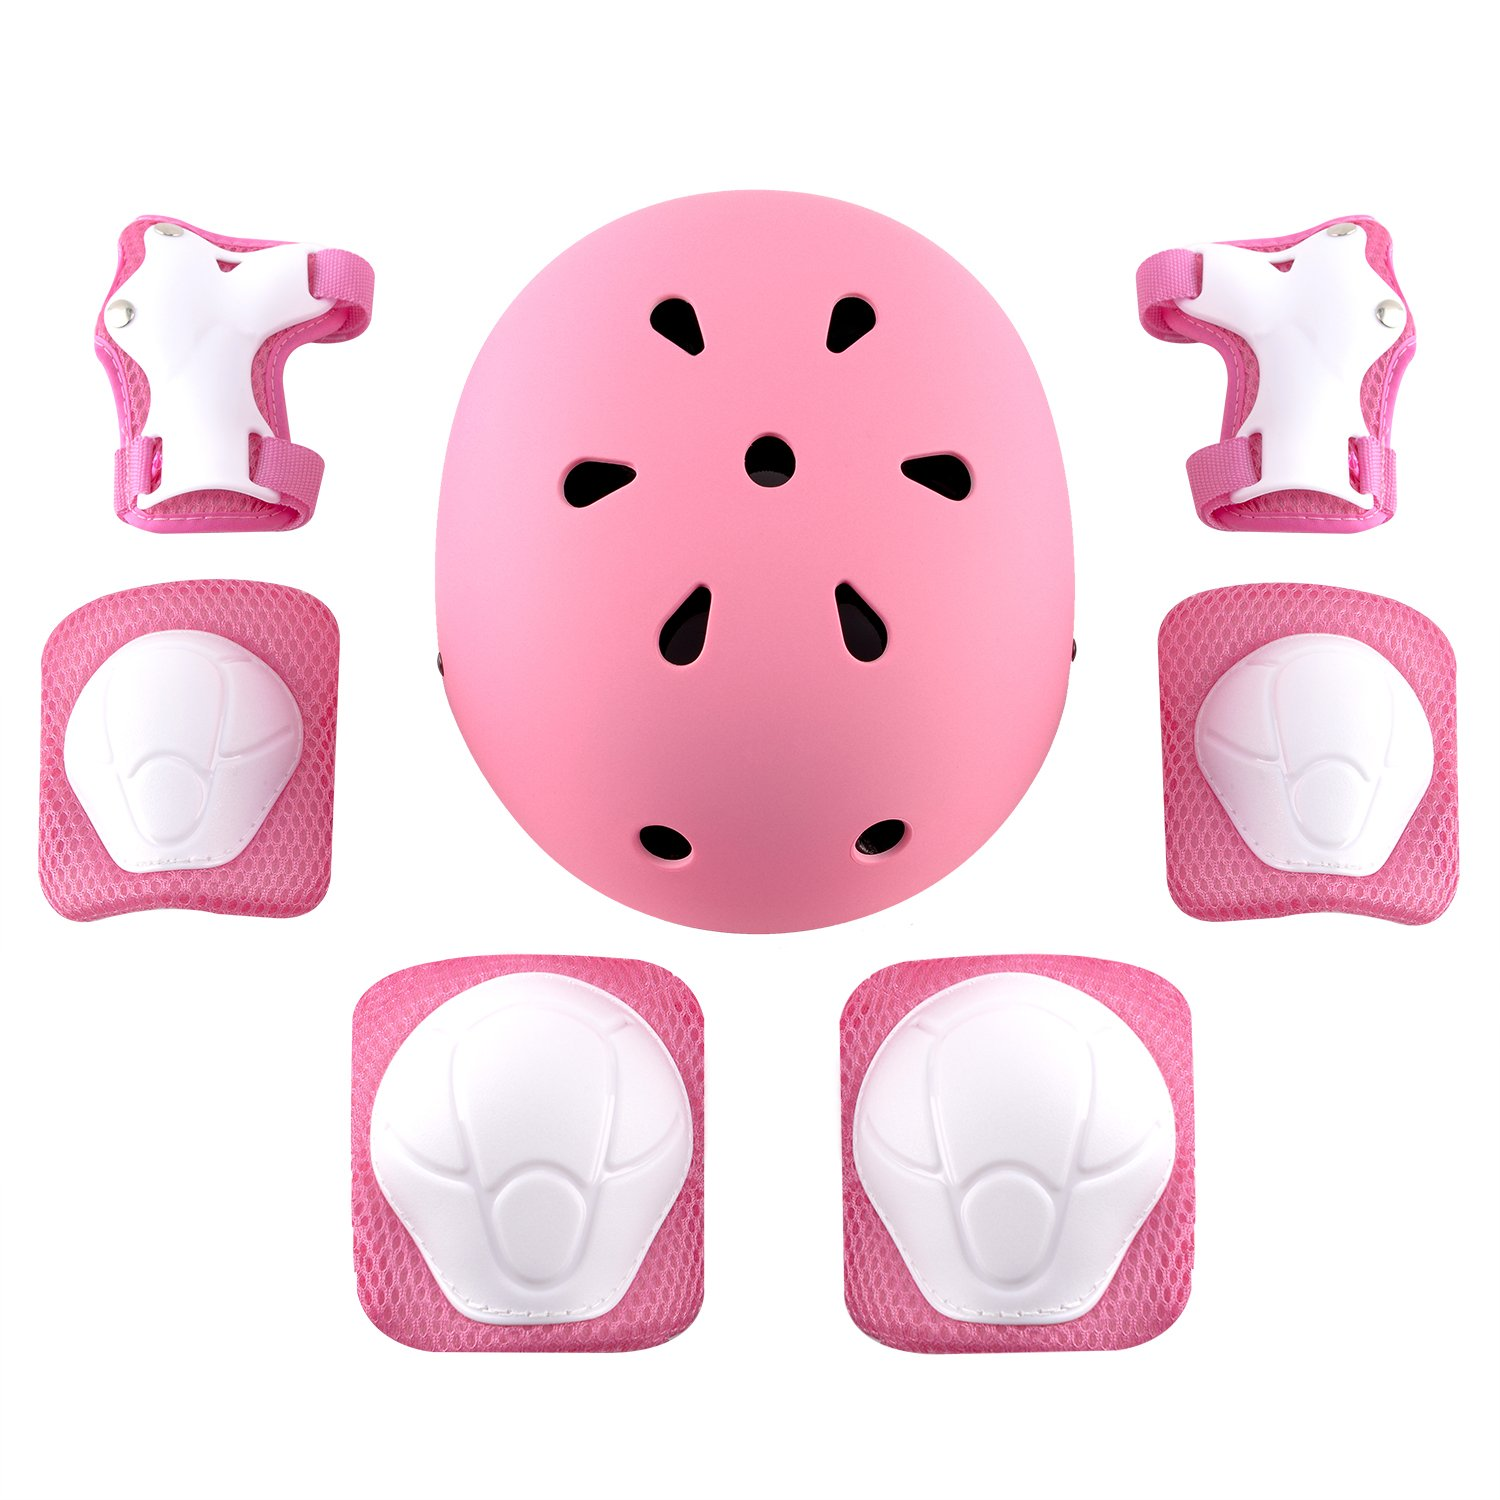 shuangjishan Child Multi-Sport Helmet With Knee Pads Elbow Wrist Protection Set for Skateboard Cycling Skate Scooter Pink by shuangjishan